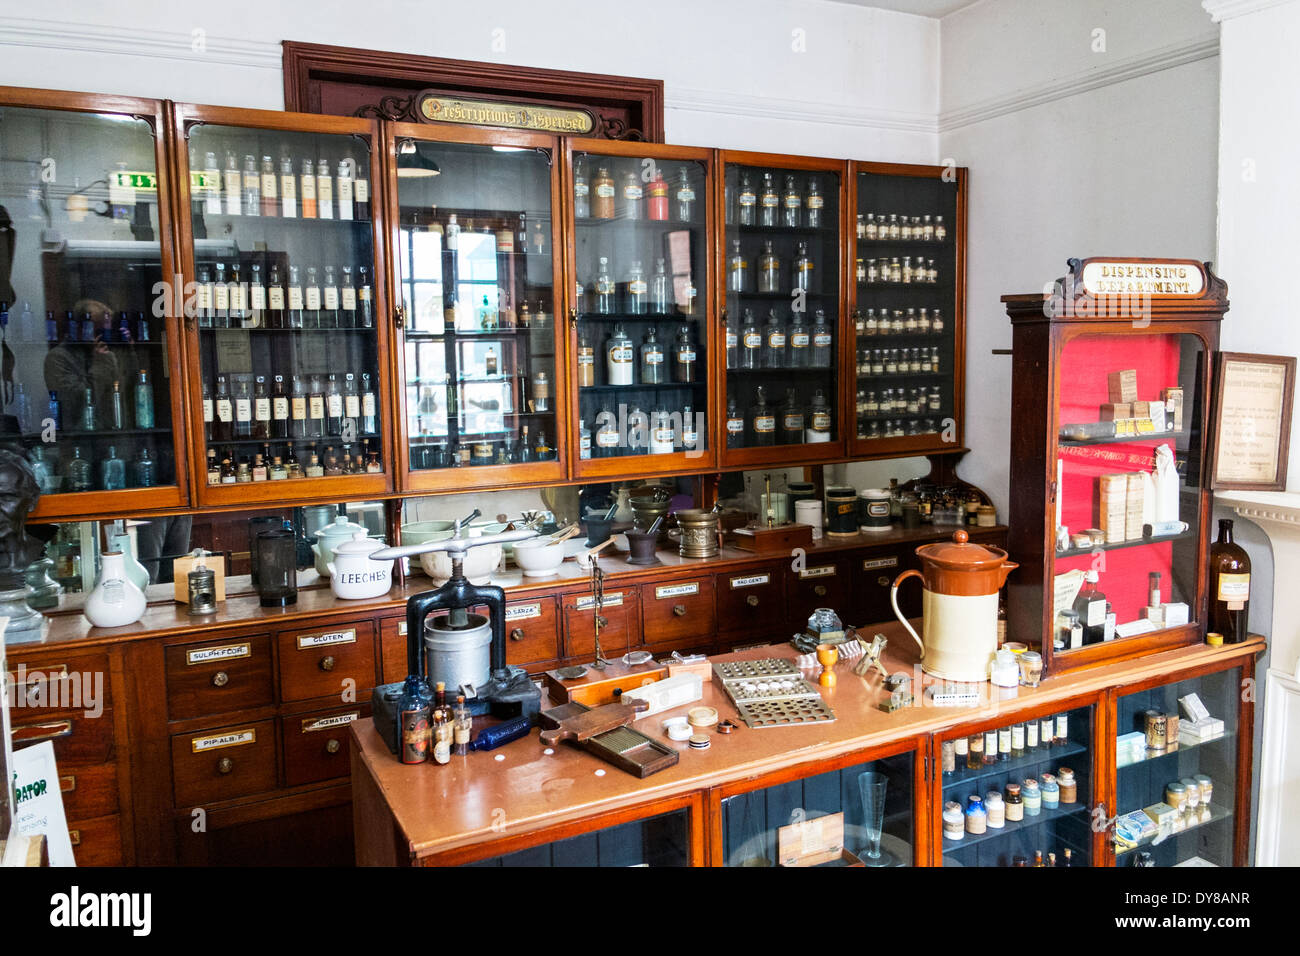 Victorian chemist shop lotions and potions on shelves health treatment Lincoln City Lincolnshire UK GB England Stock Photo